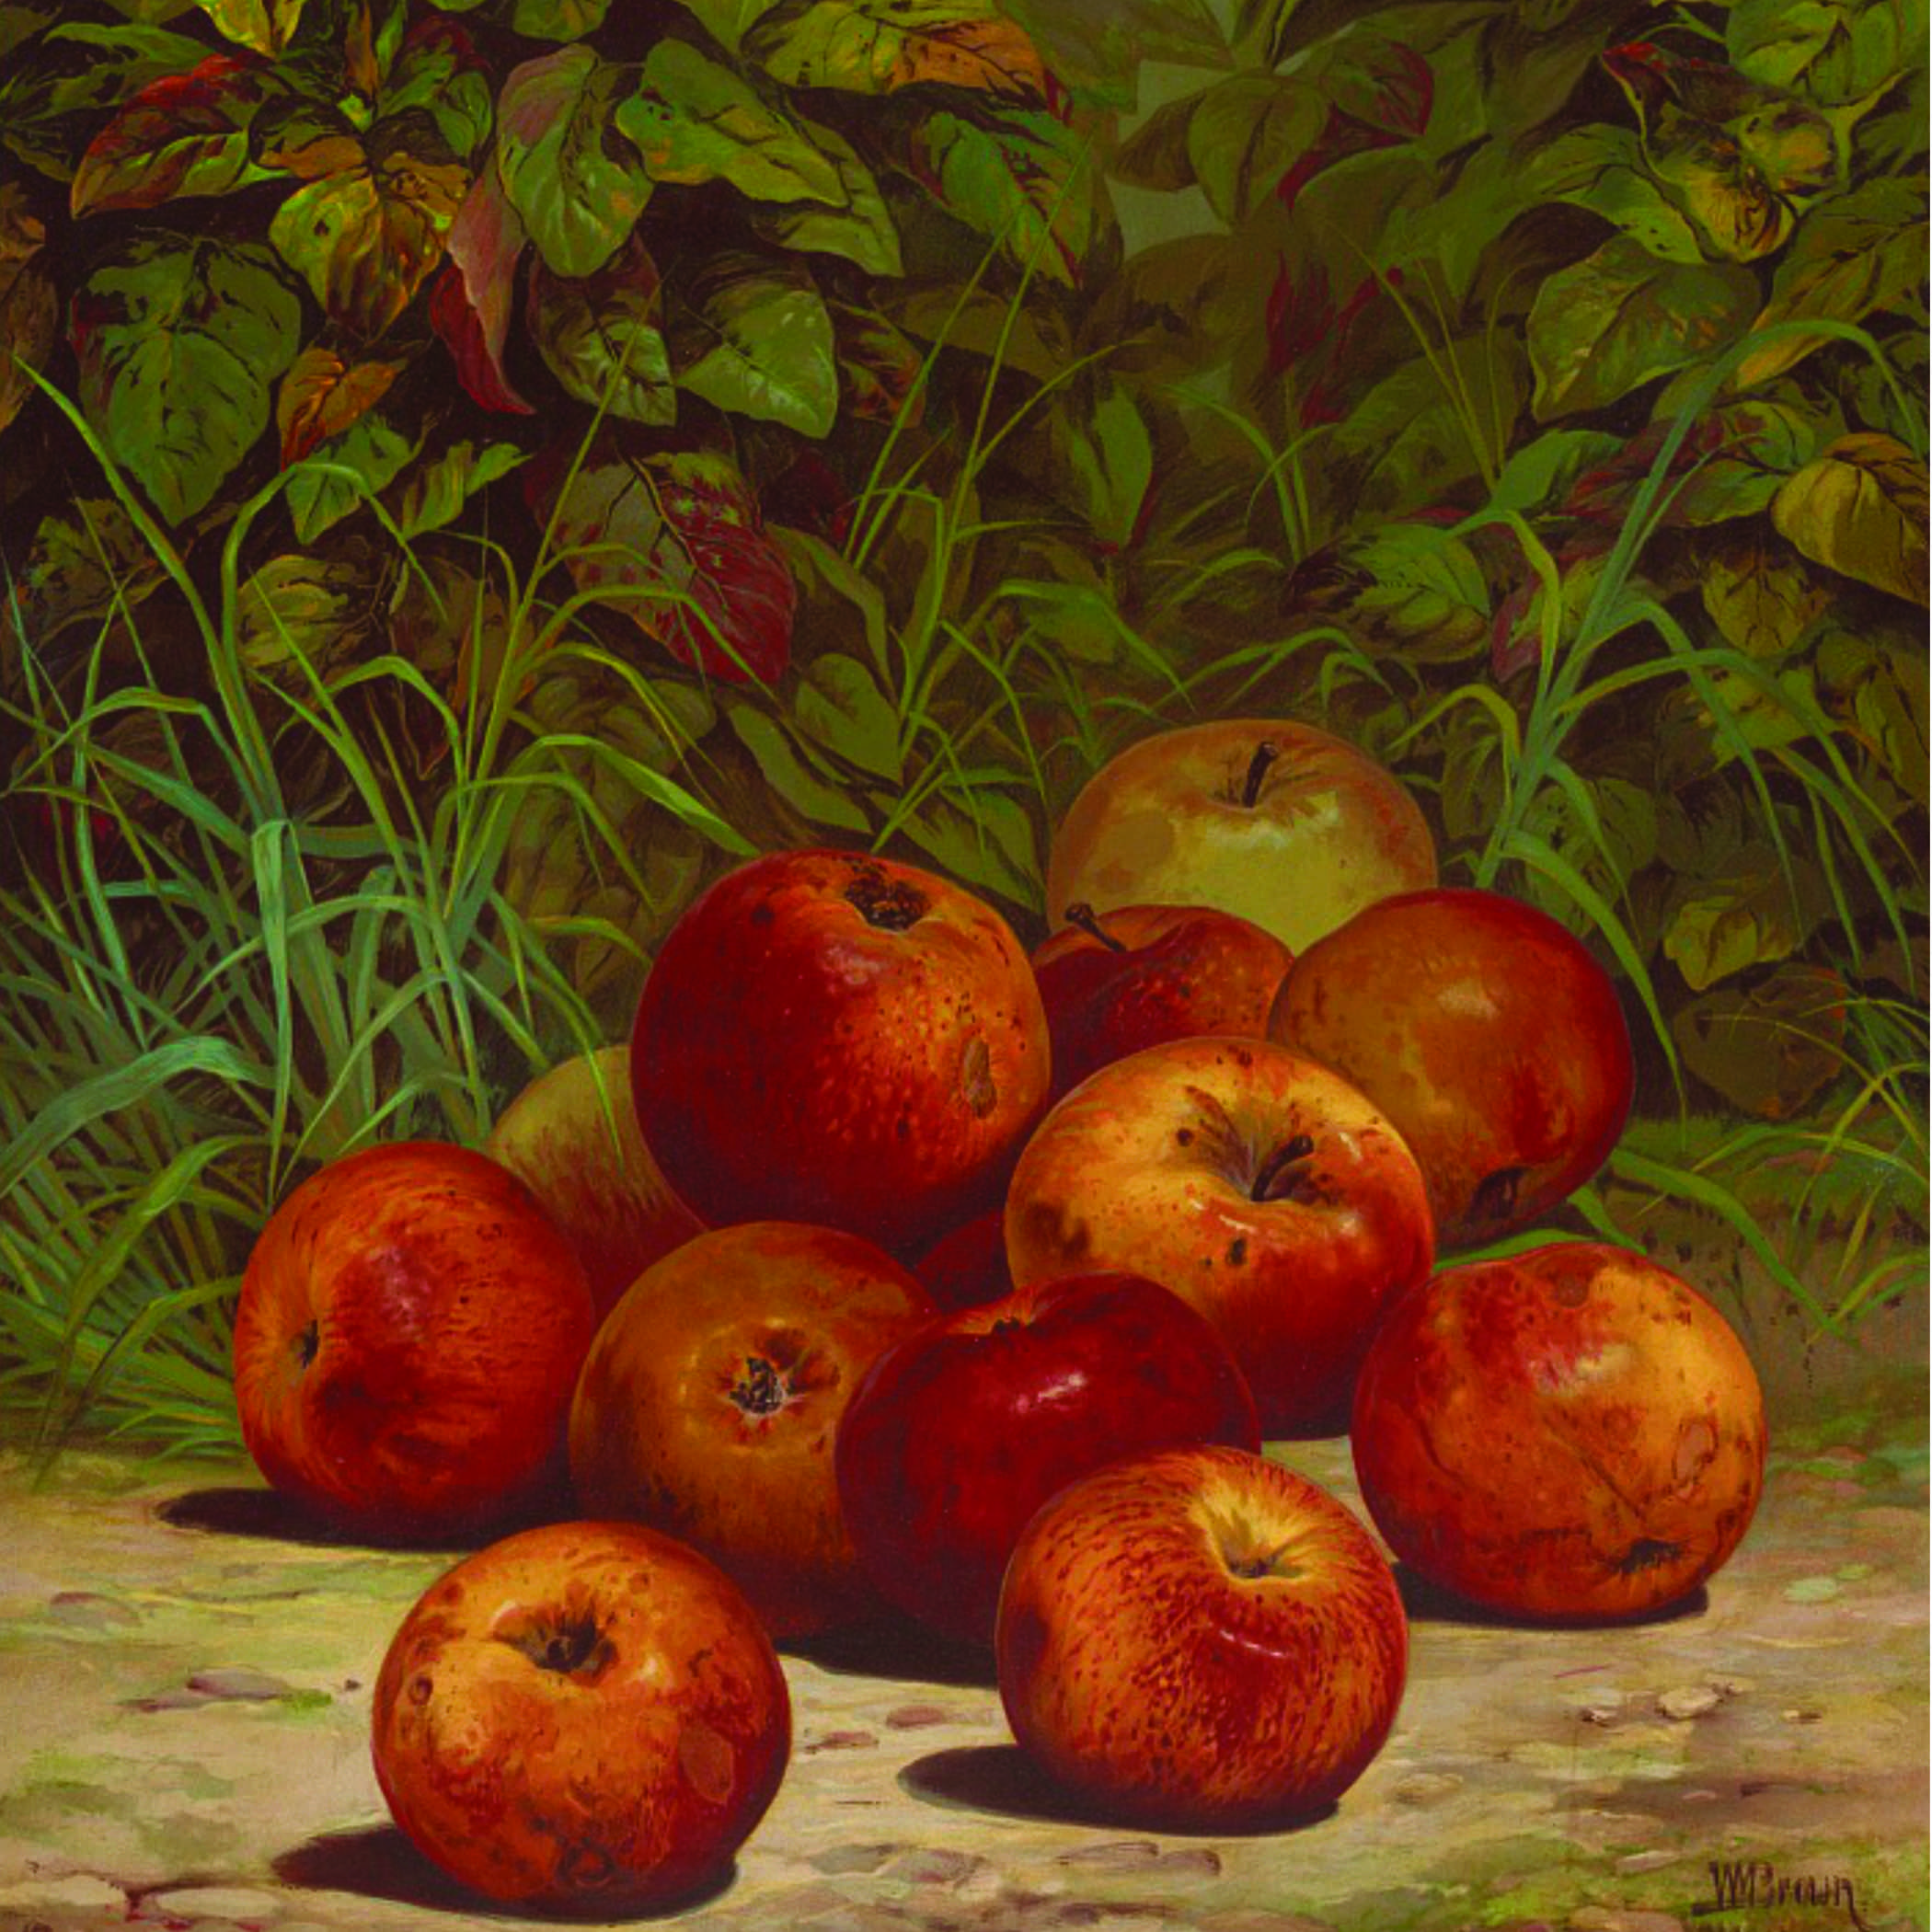 painting of a pile of red and yellow striped apples on the ground with greenery behind them